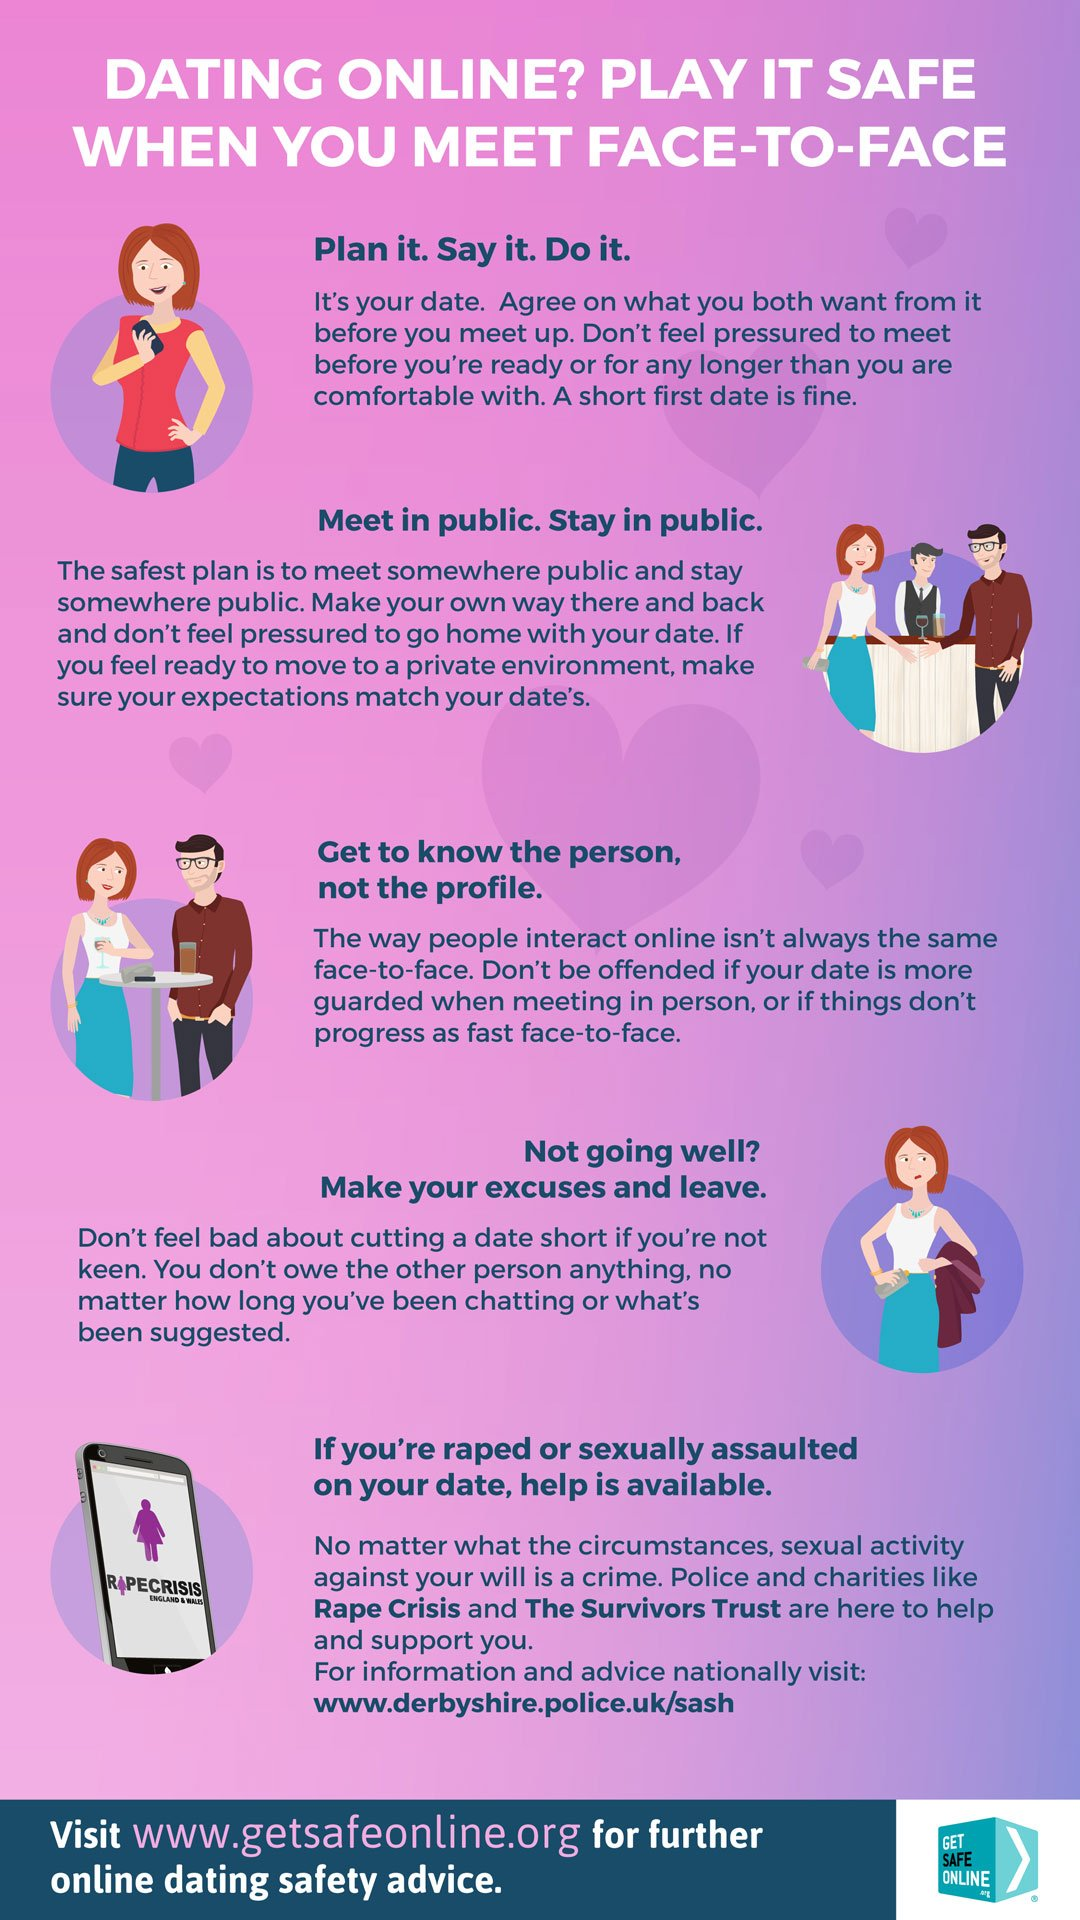 Online dating before you meet